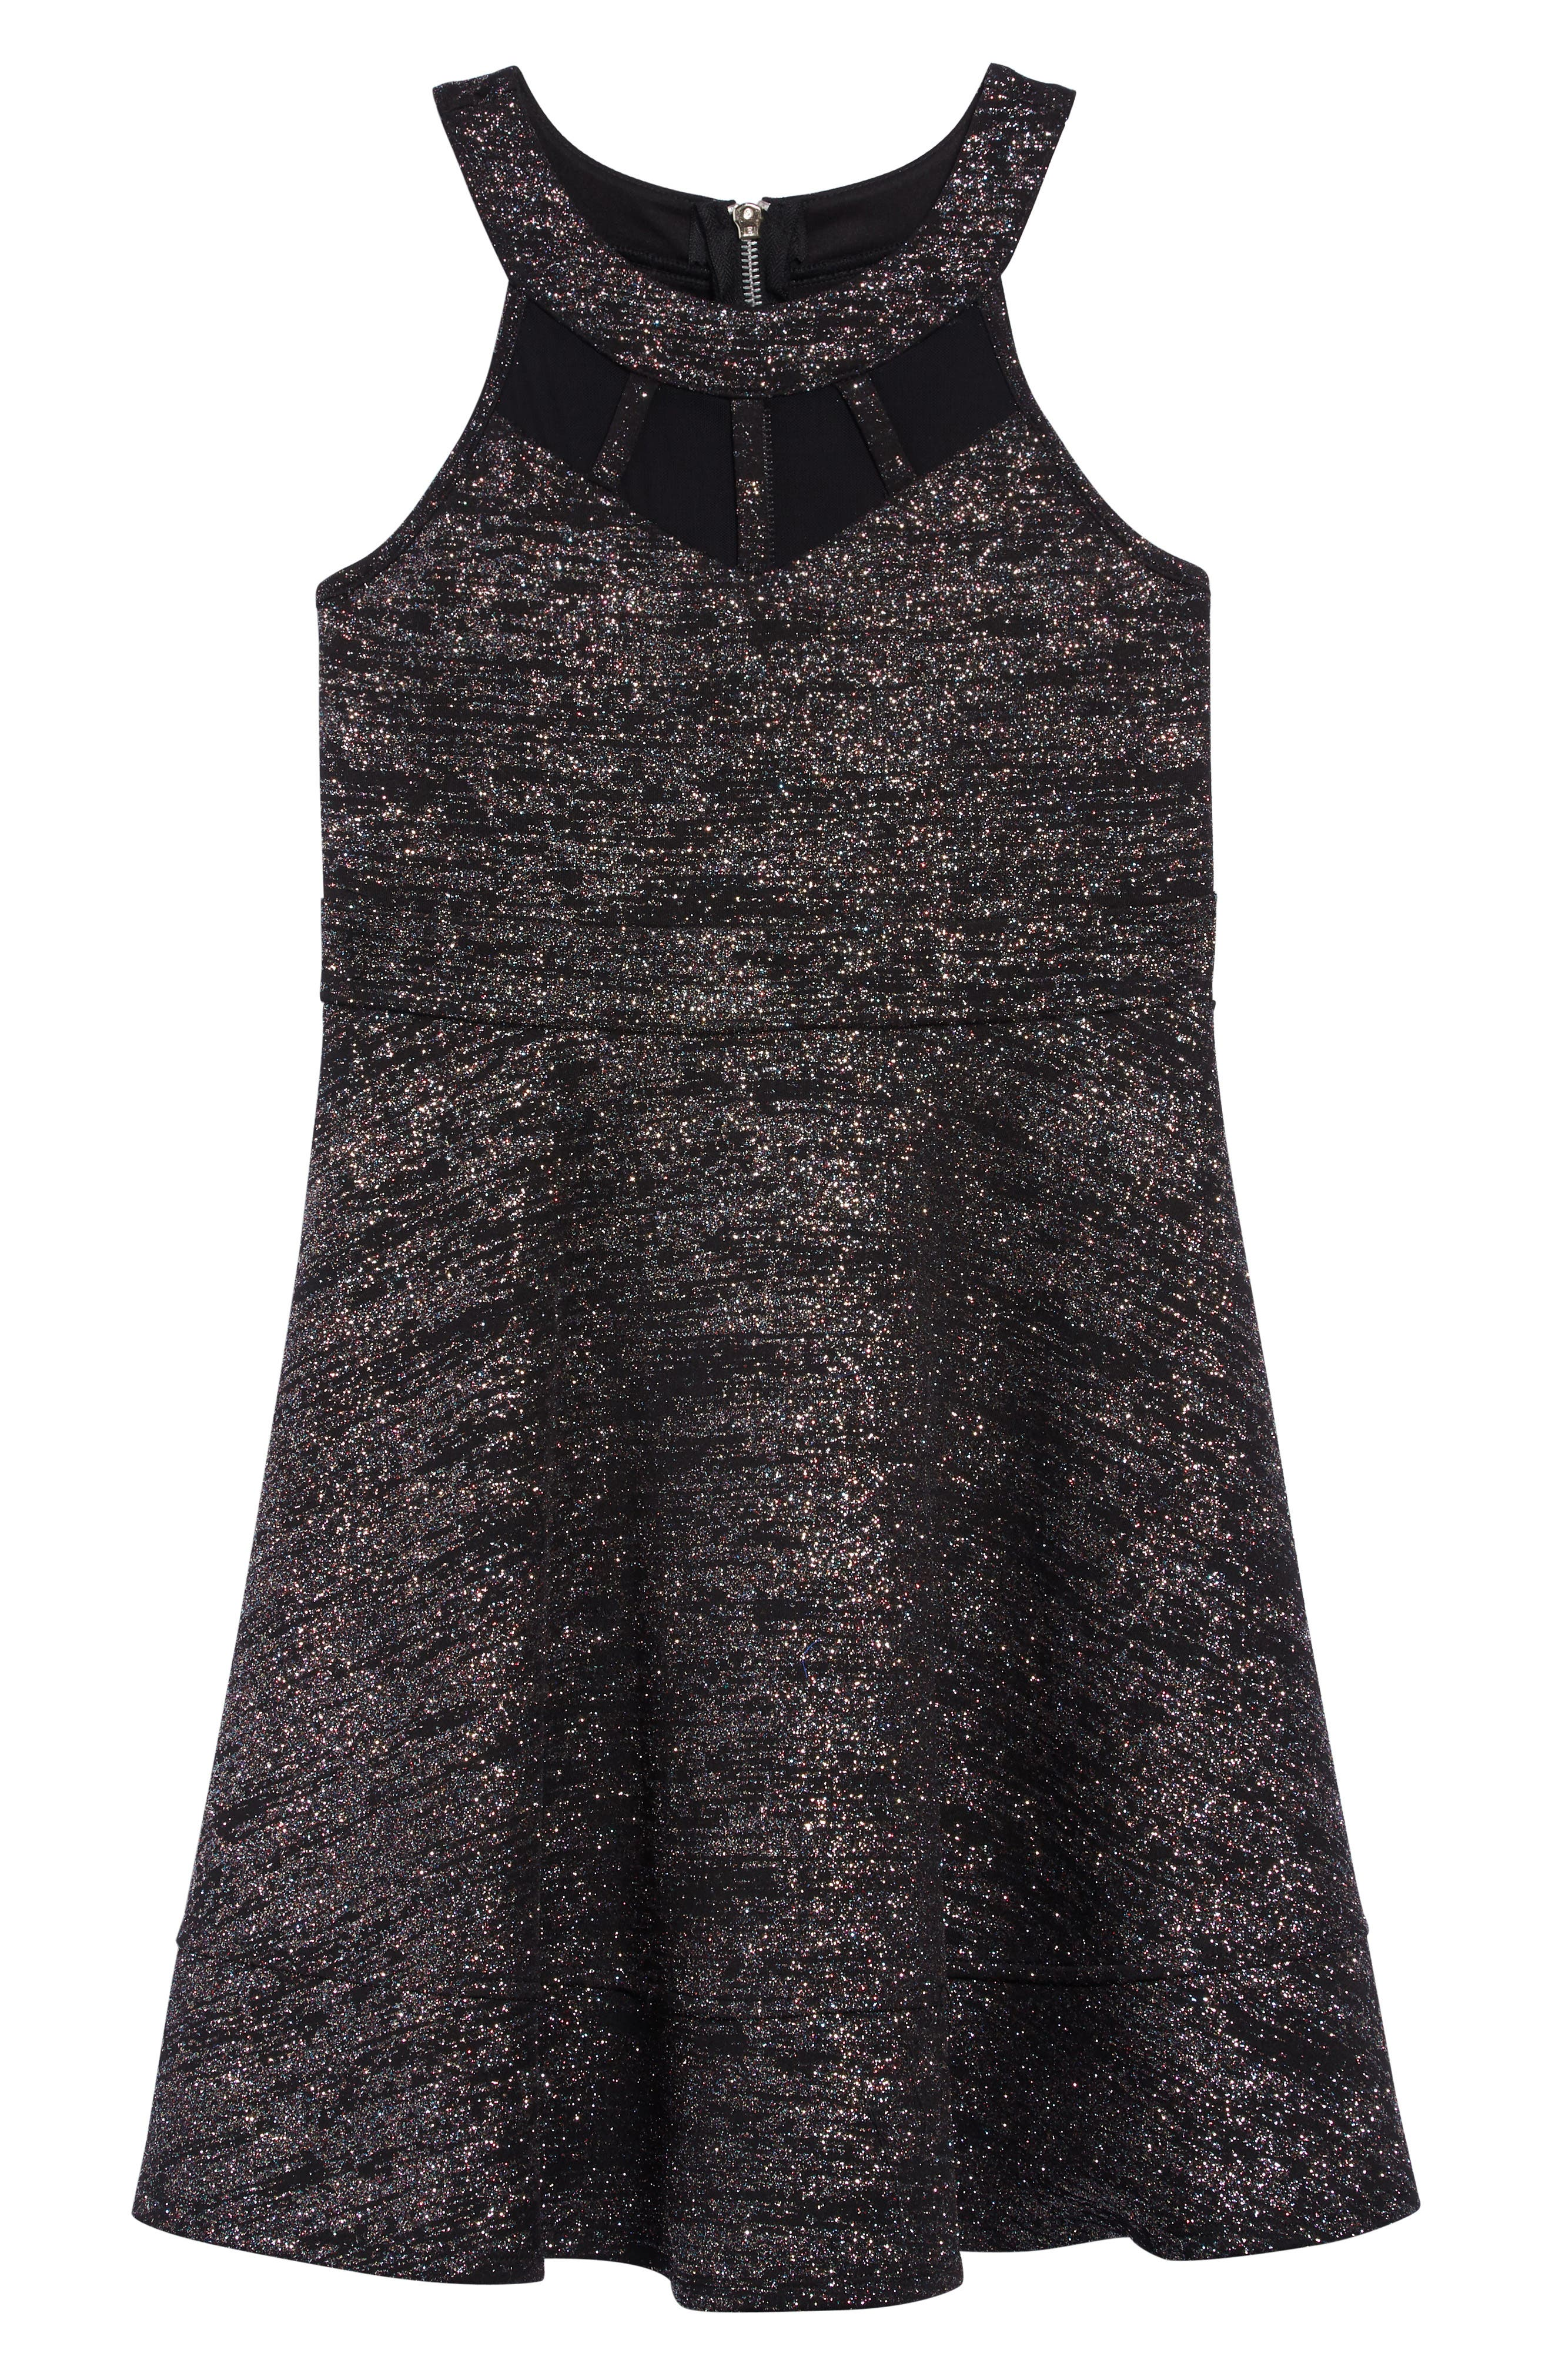 Image of Love, Nickie Lew Multicolor Glitter Illusion Dress